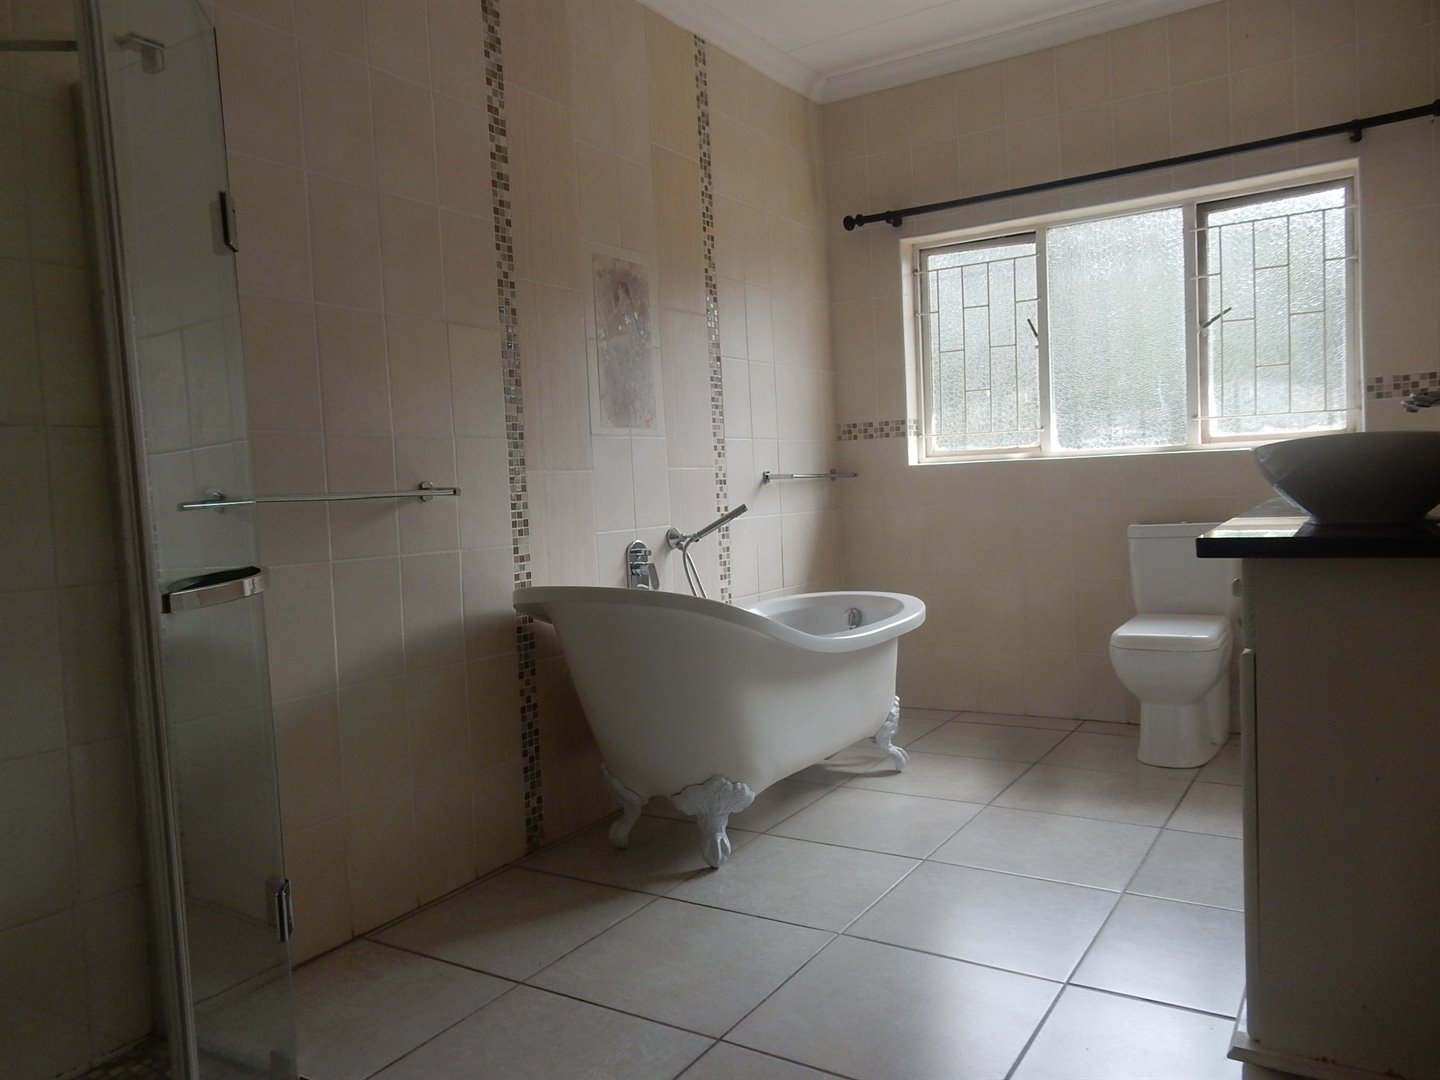 Kwambonambi property for sale. Ref No: 13473533. Picture no 14